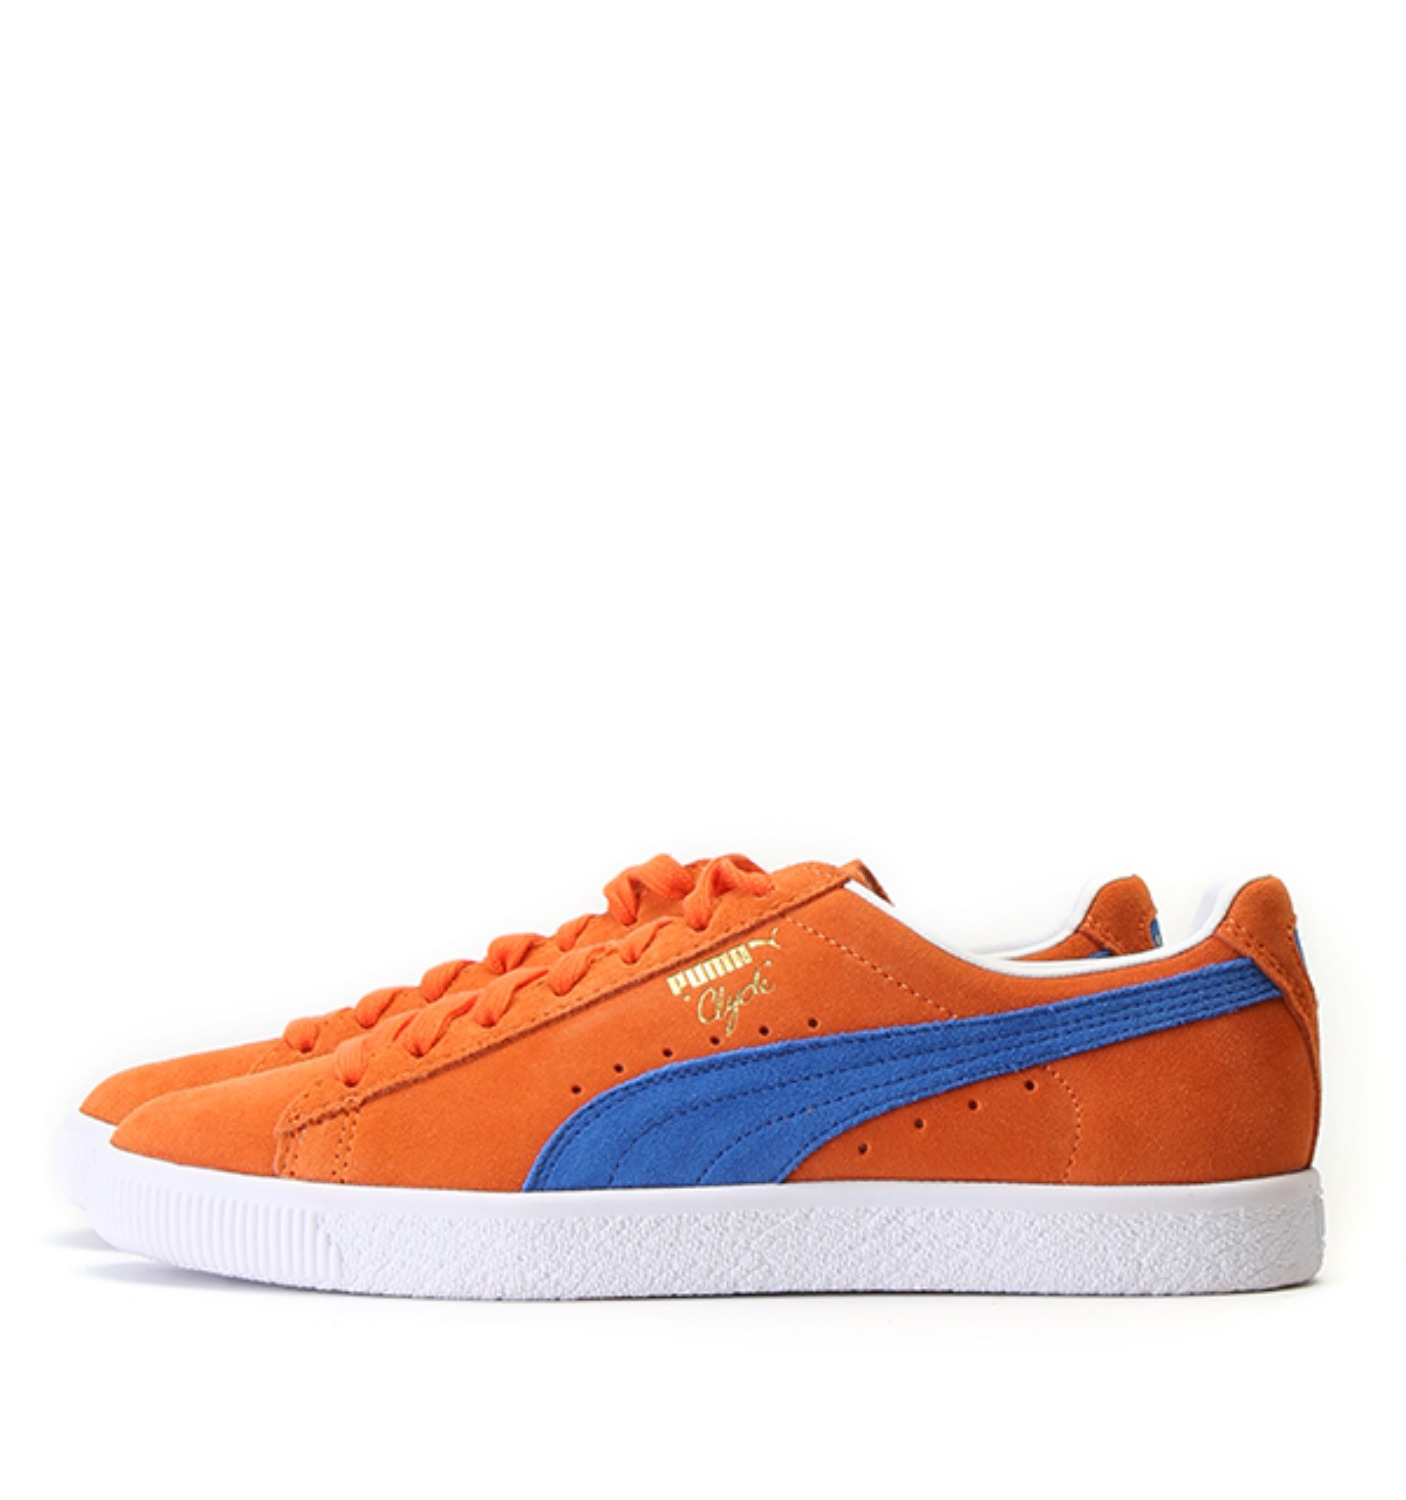 CLYDE NYC VIBRANT ORANGE/PUMA ROYAL(3613550)